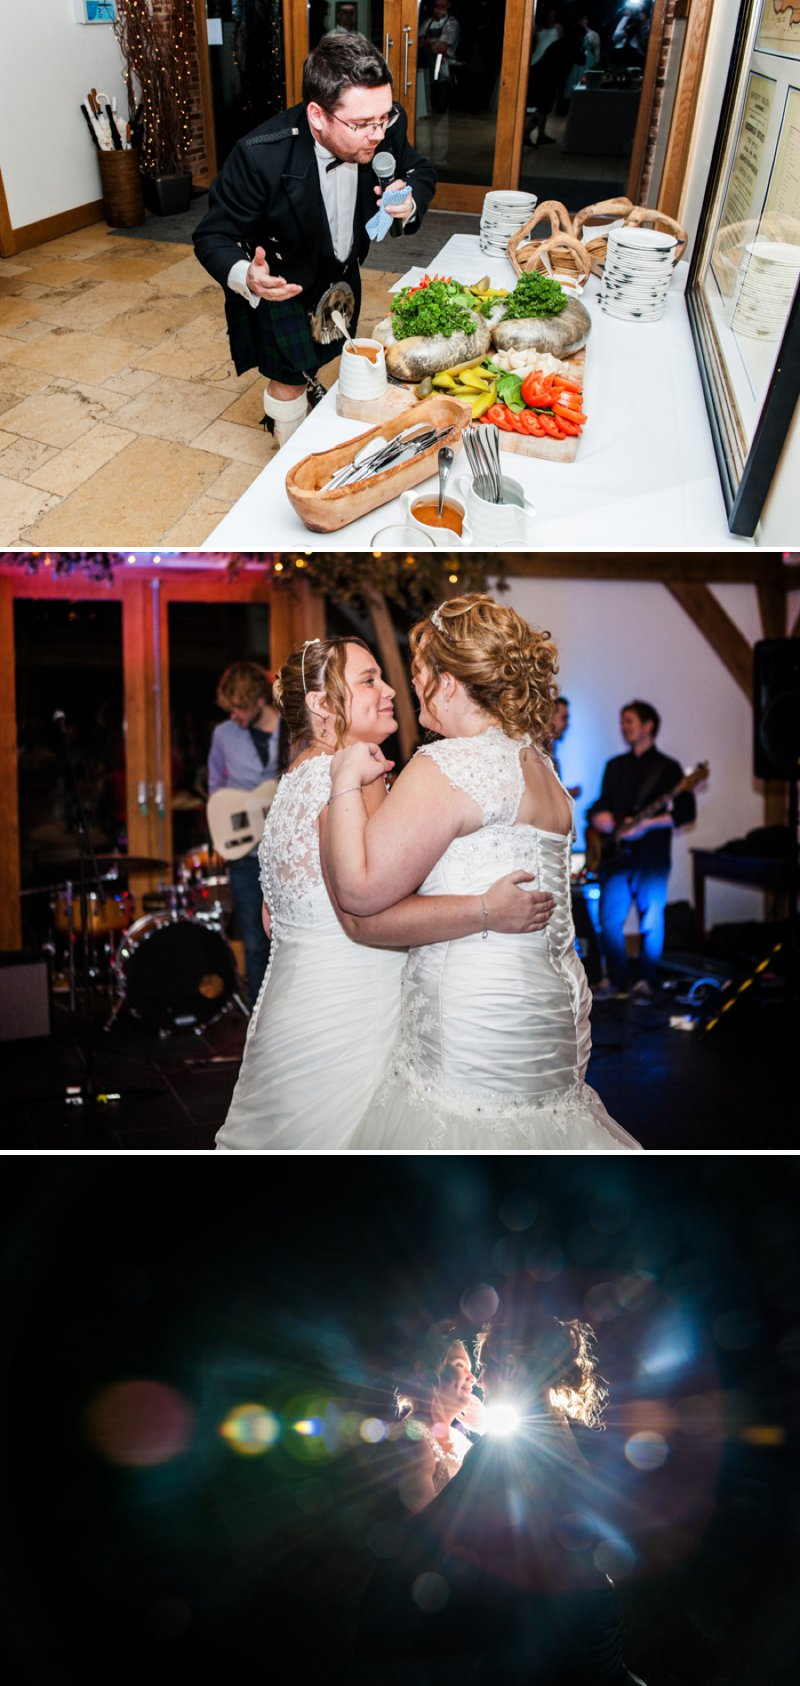 Rustic Same Sex Wedding At Mythe Barn With Brides In Traditional Ivory Gowns By Mori Lee And Donna Lee Designs With Bridesmaids In Dusky Pink And Sage Green 10